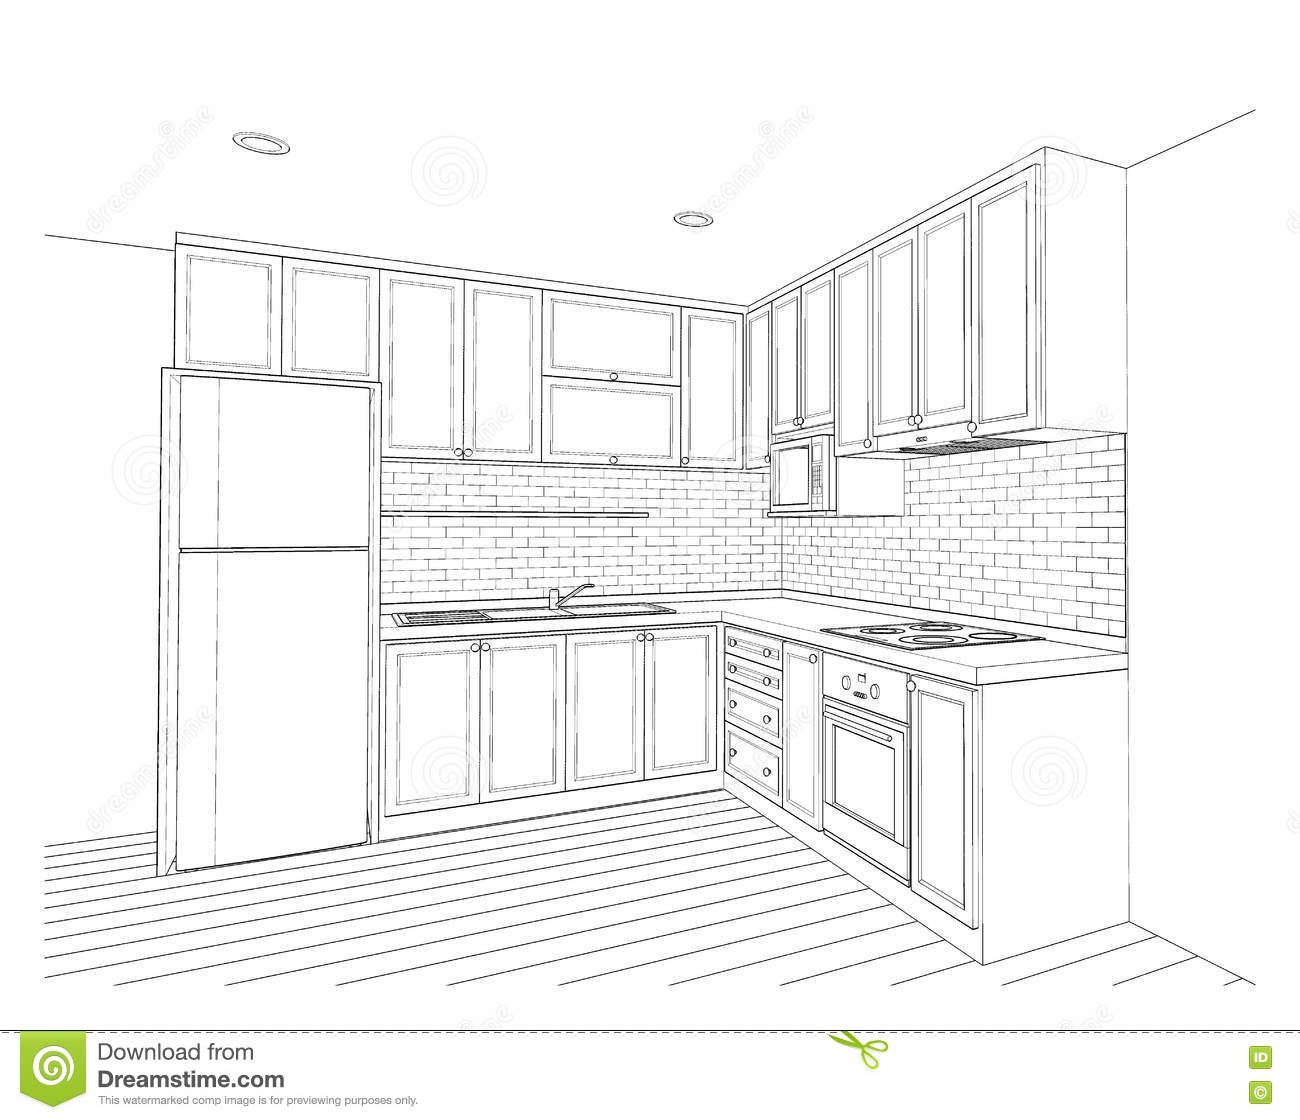 Interior design kitchen stock illustration image of for Decor outline